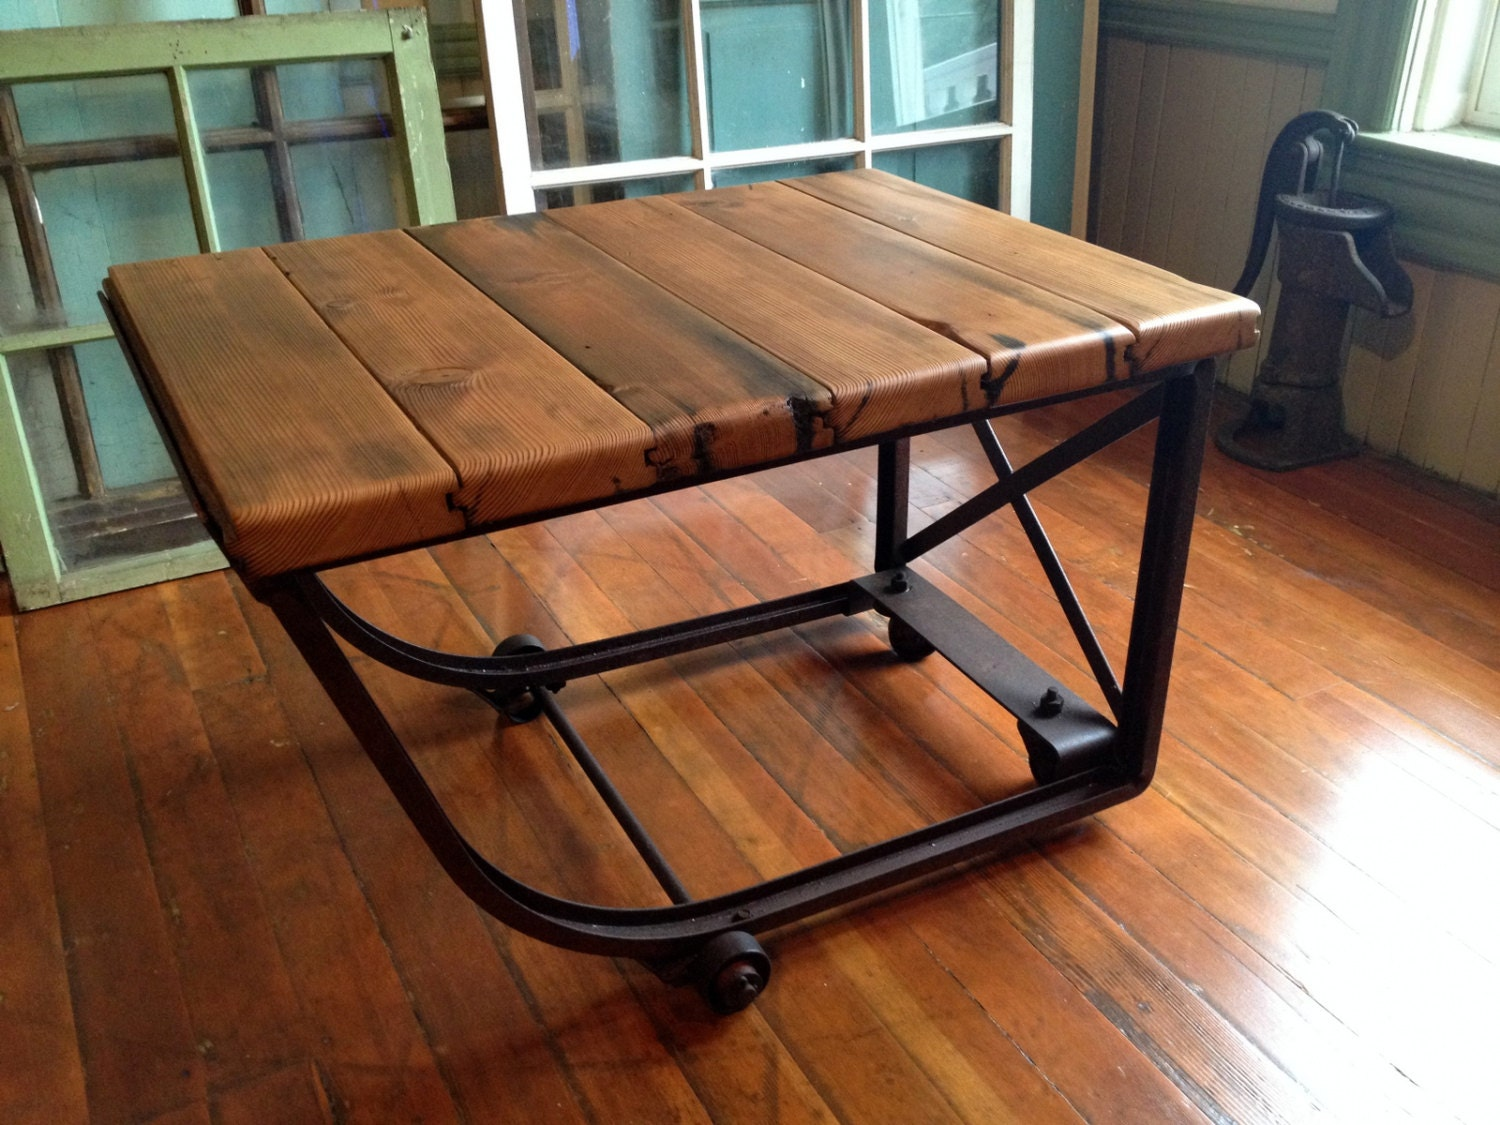 Reclaimed wood industrial coffee table metal casters barn Wood and steel furniture